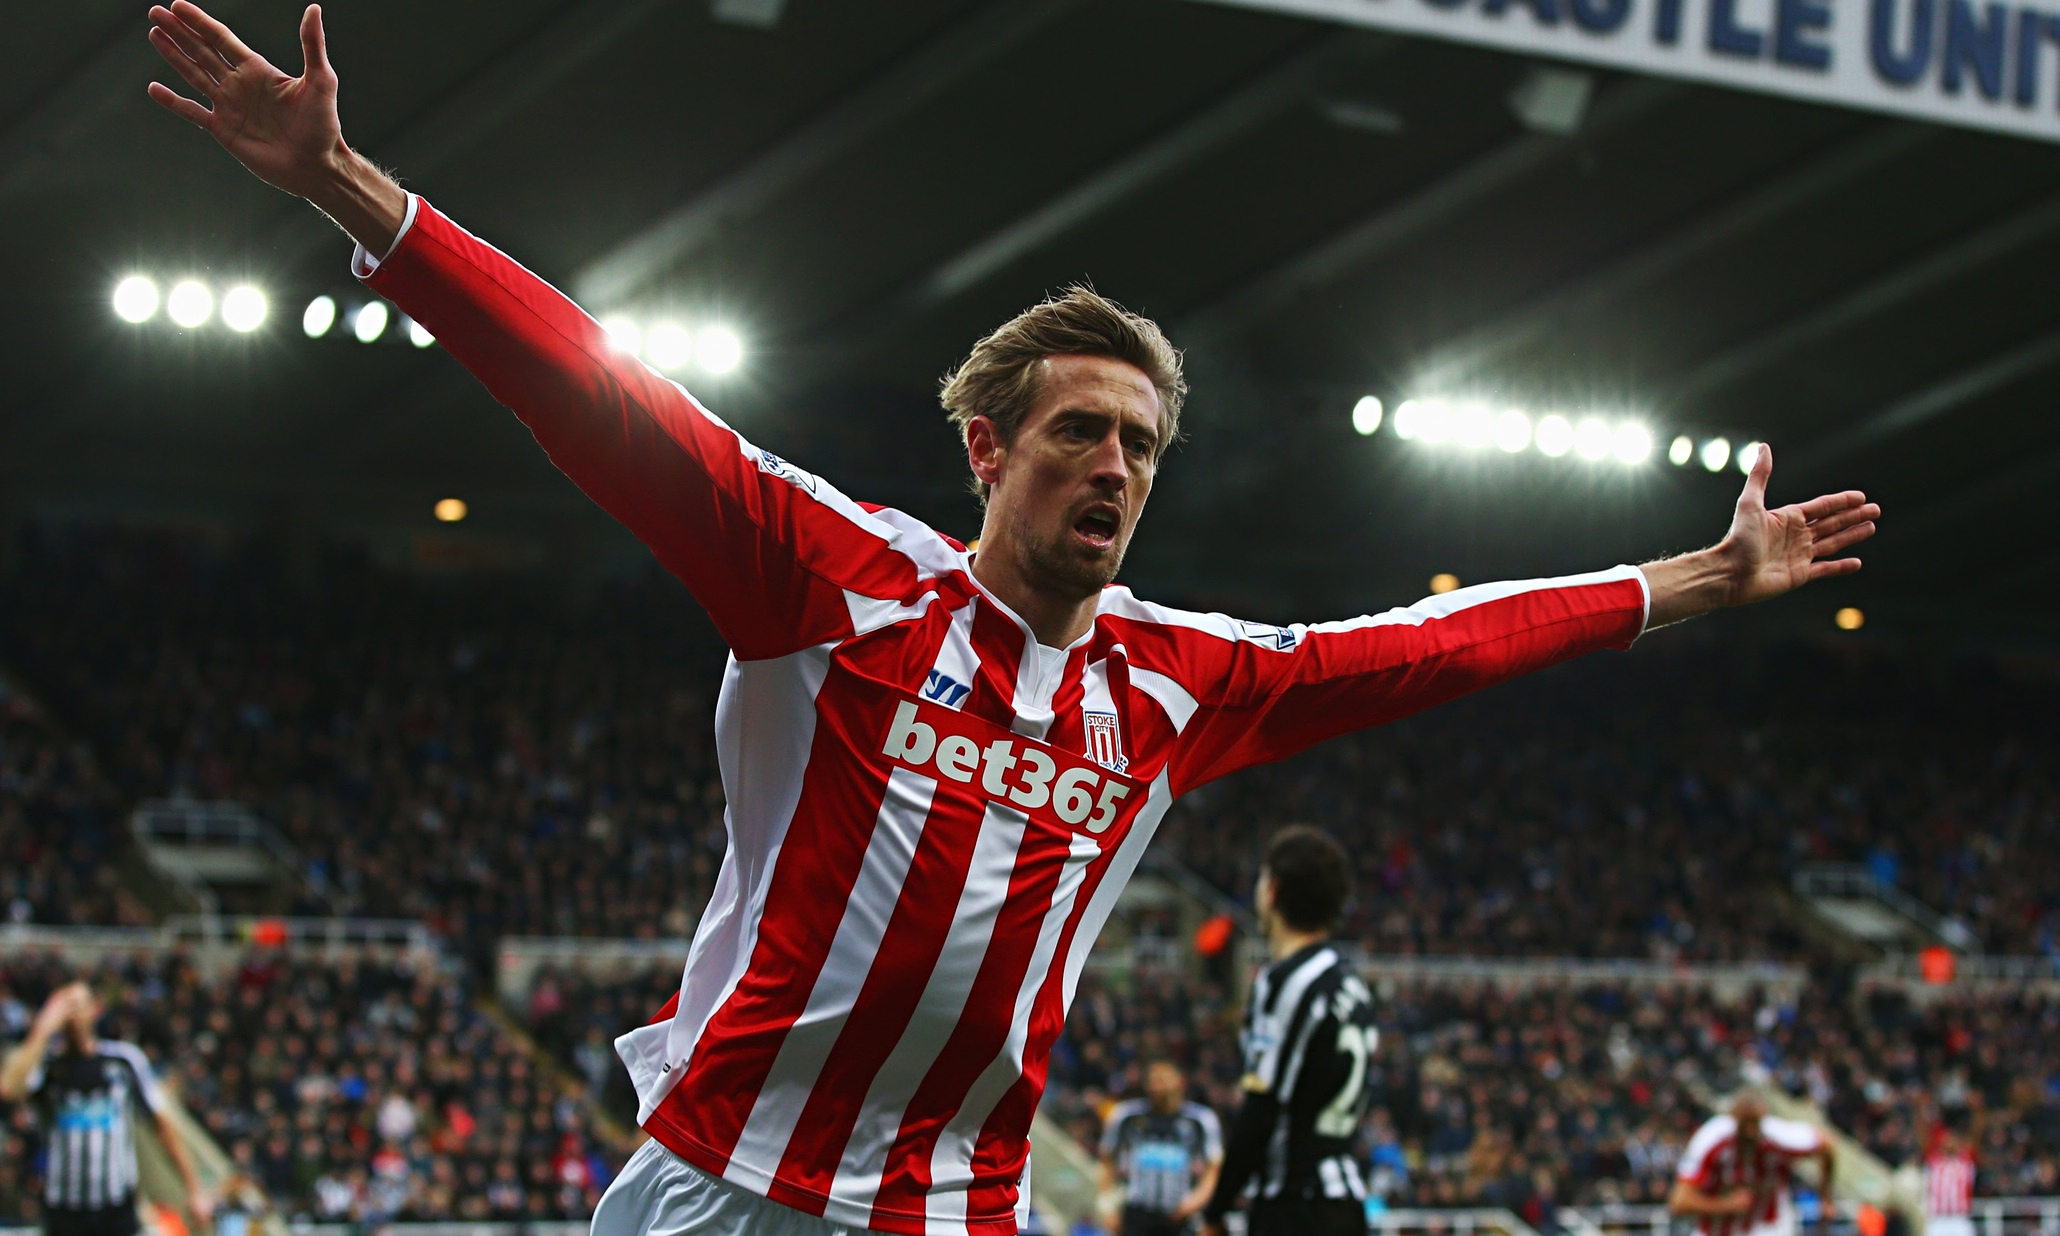 http://static.guim.co.uk/sys-images/Football/Clubs/Club_Home/2015/2/8/1423412733009/Peter-Crouch-009.jpg